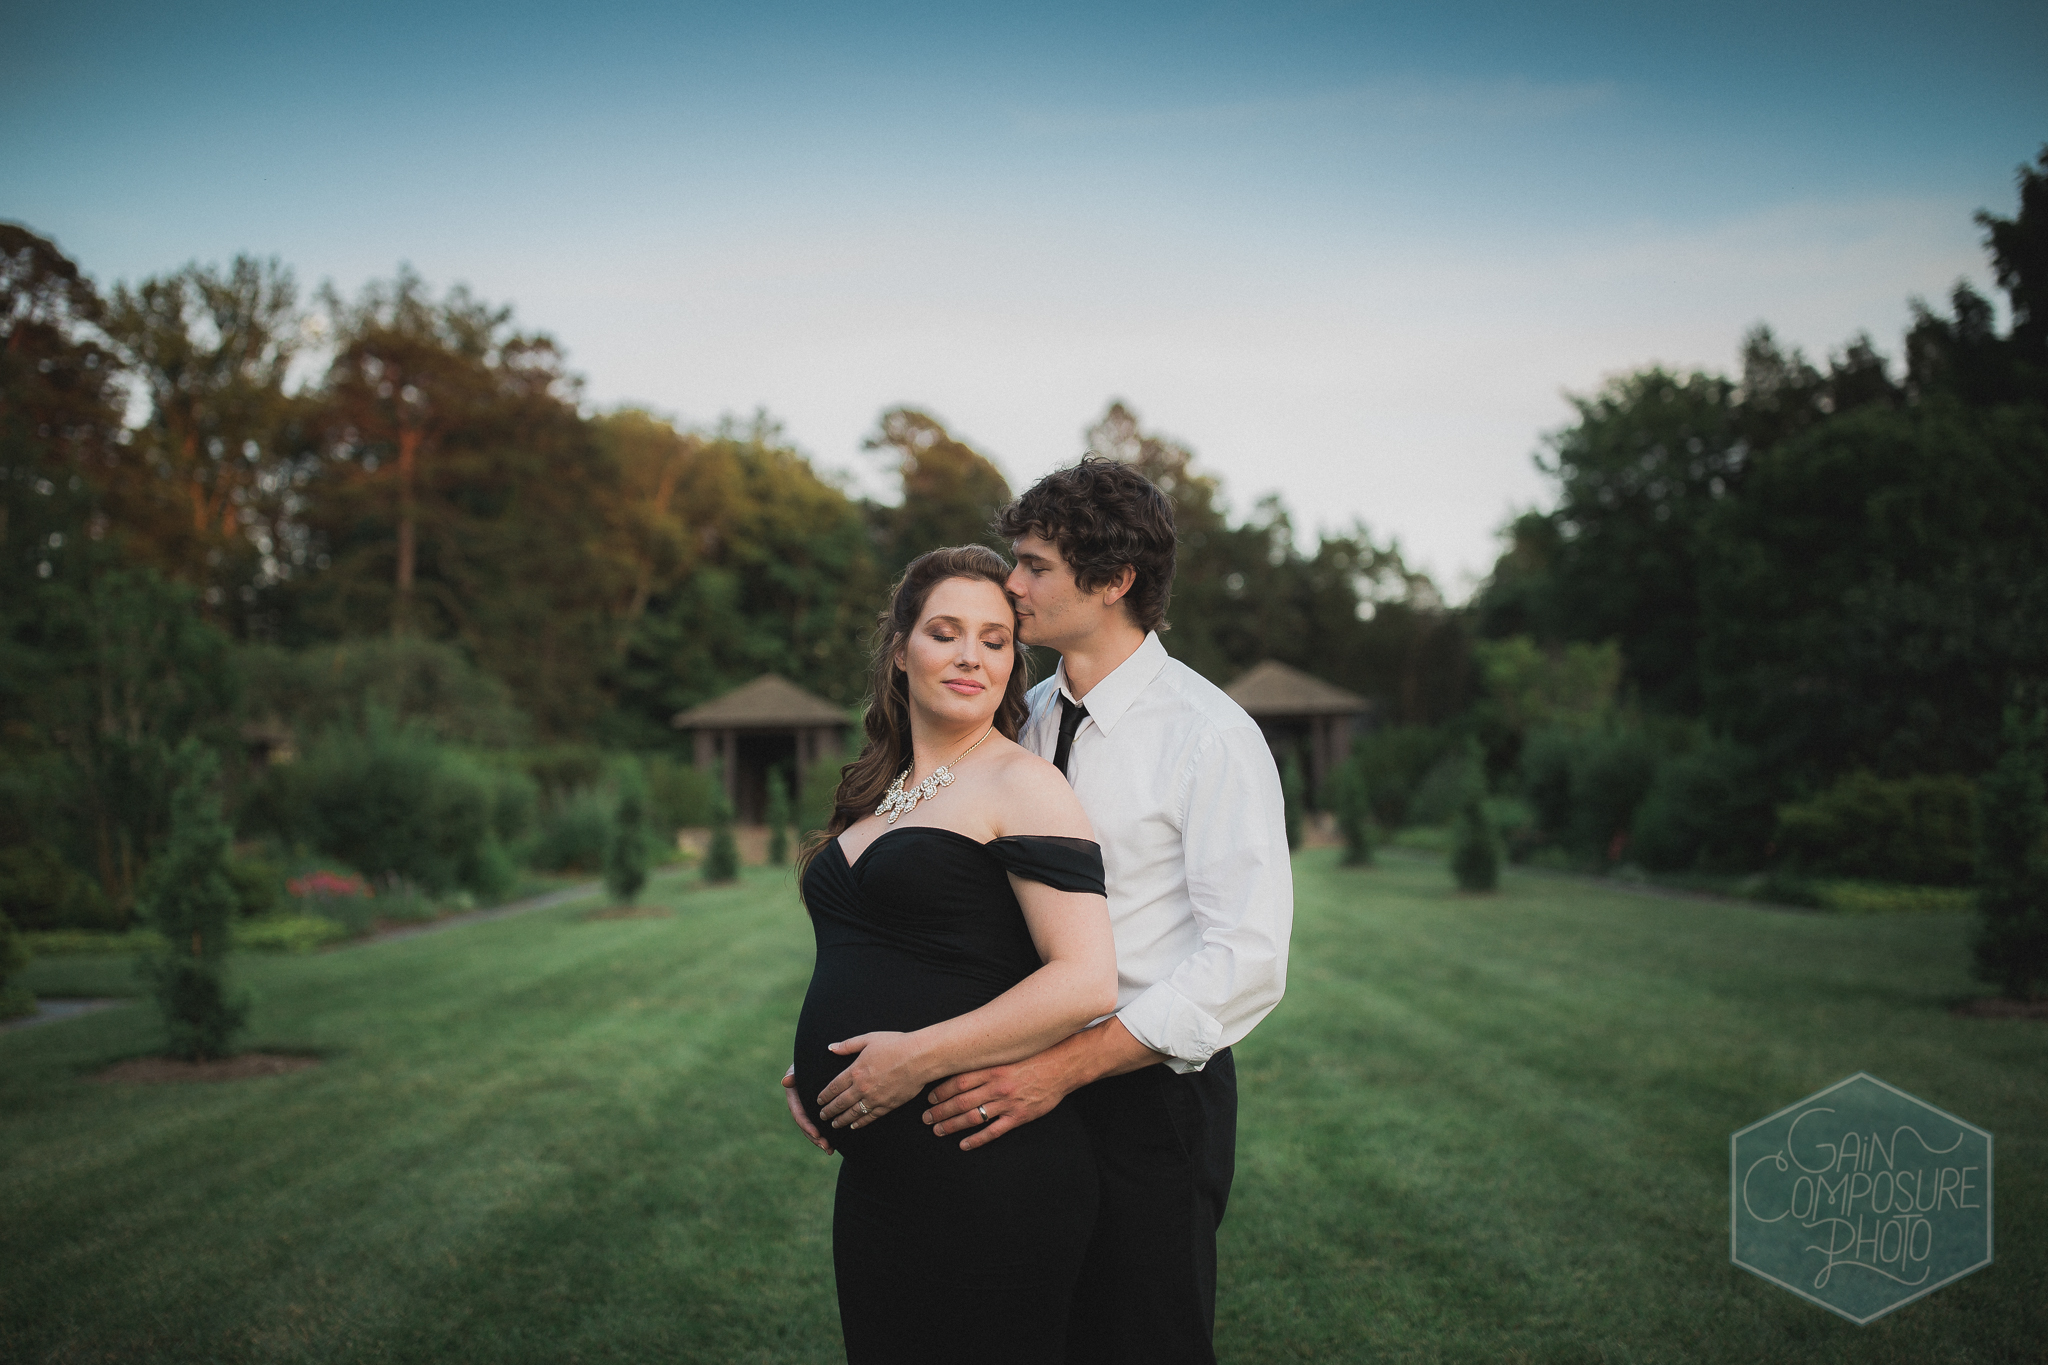 Maternity Session at Reynolda Gardens by Gain Composure Photography, Greensboro, NC